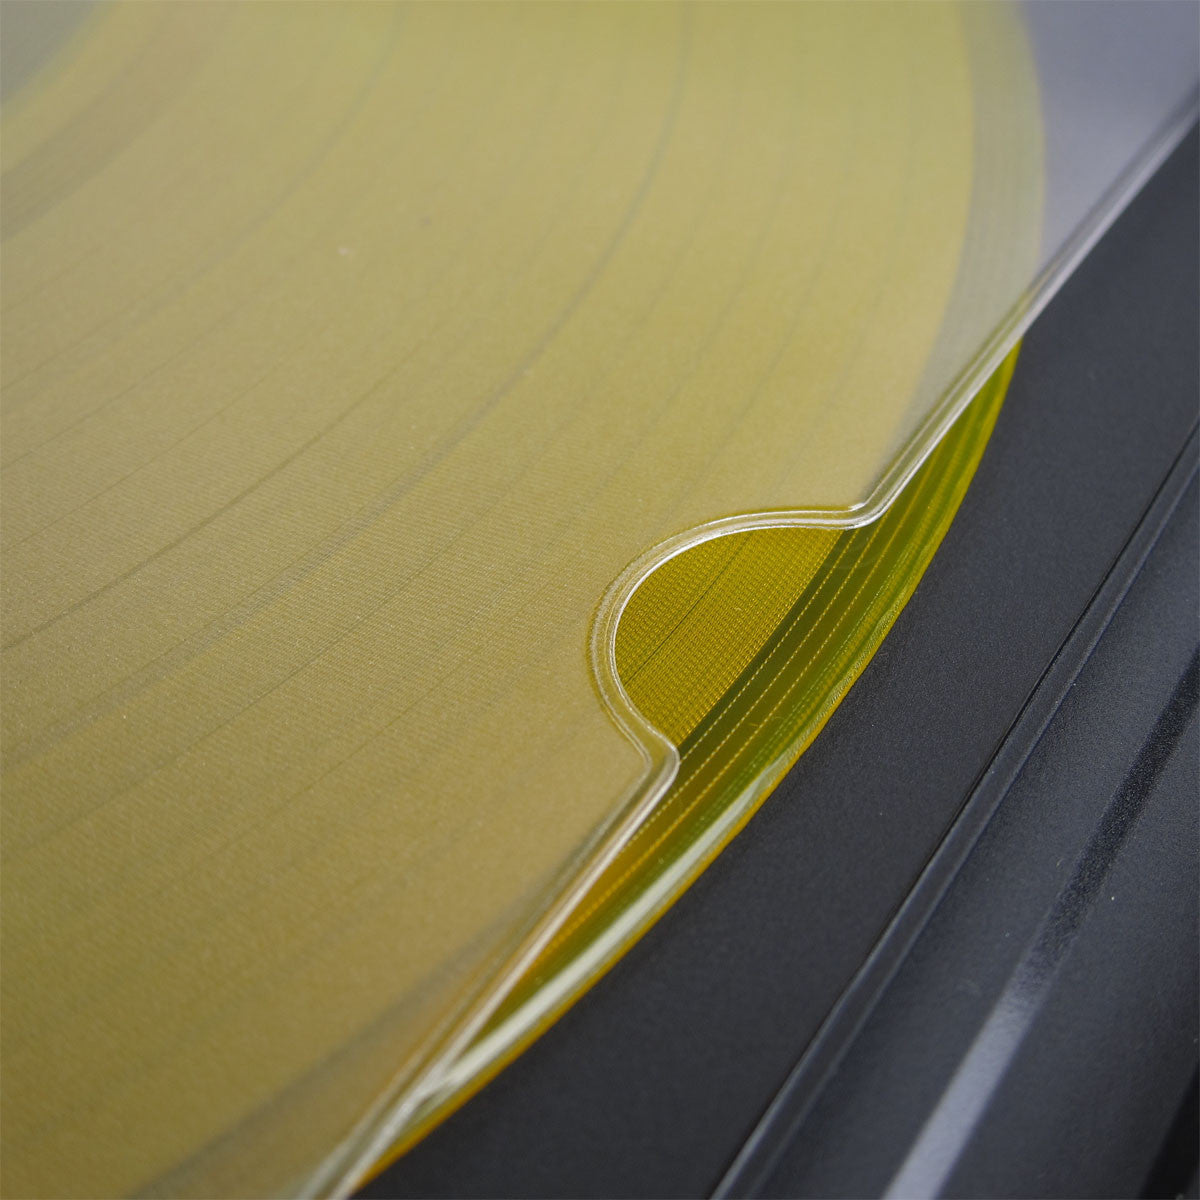 Turntable Lab: Vinyl Vault by Dr. Suzuki - Turntable Lab Edition detail 3